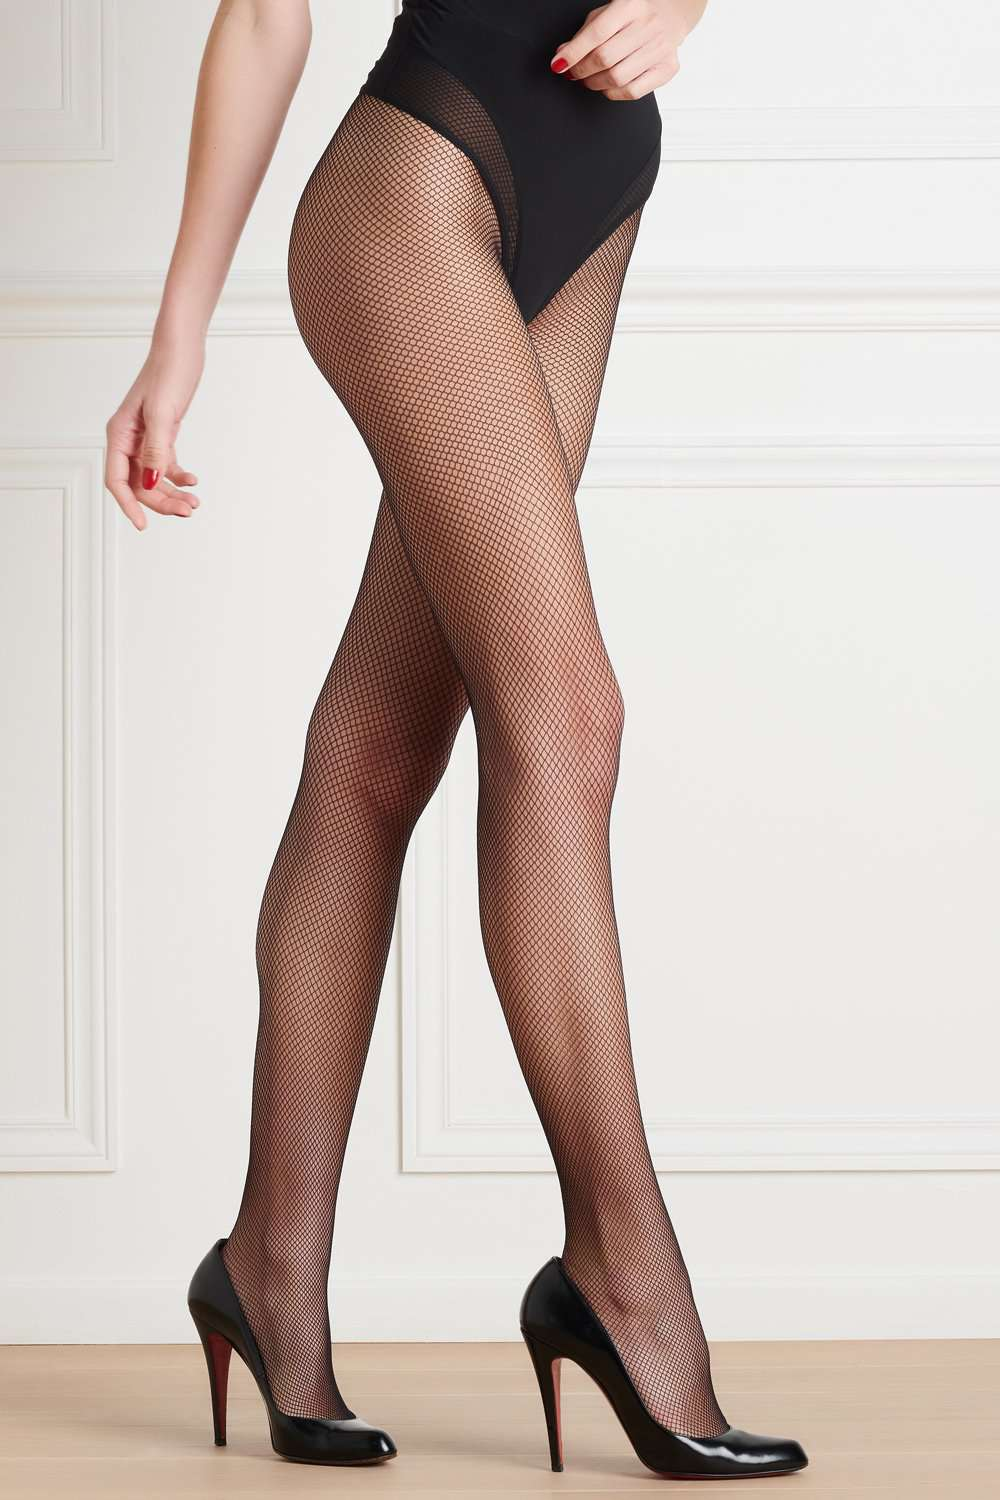 Maison Close Fishnet Tights